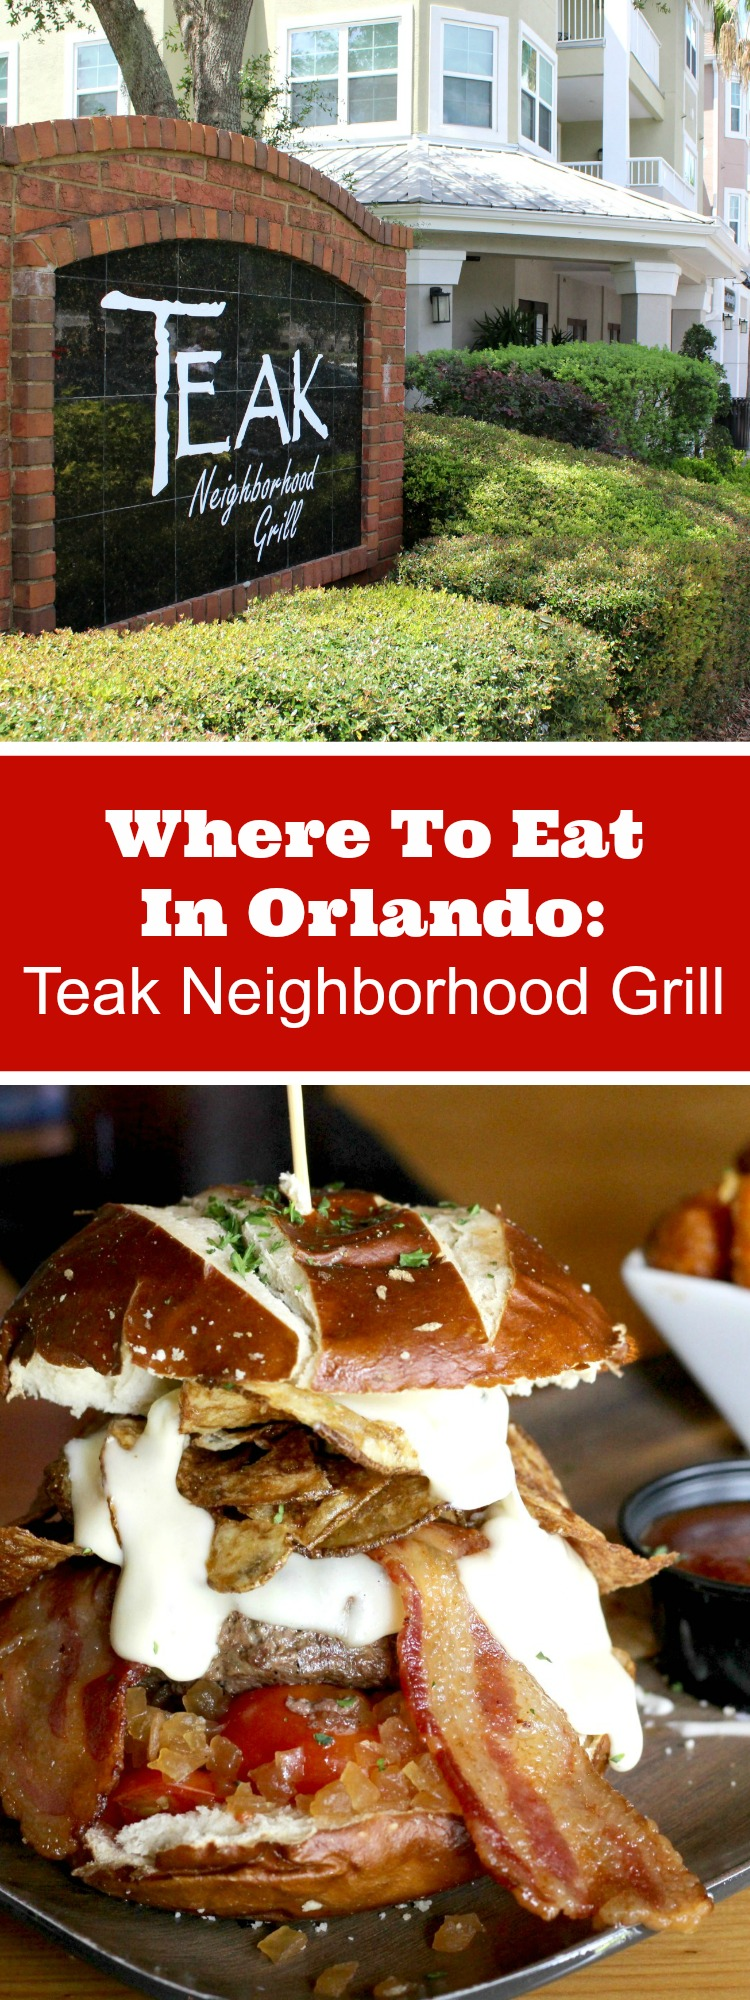 Trying to decide where to eat in Orlando, Florida? The award winning Teak Neighborhood Grill is popular with both tourists and locals.